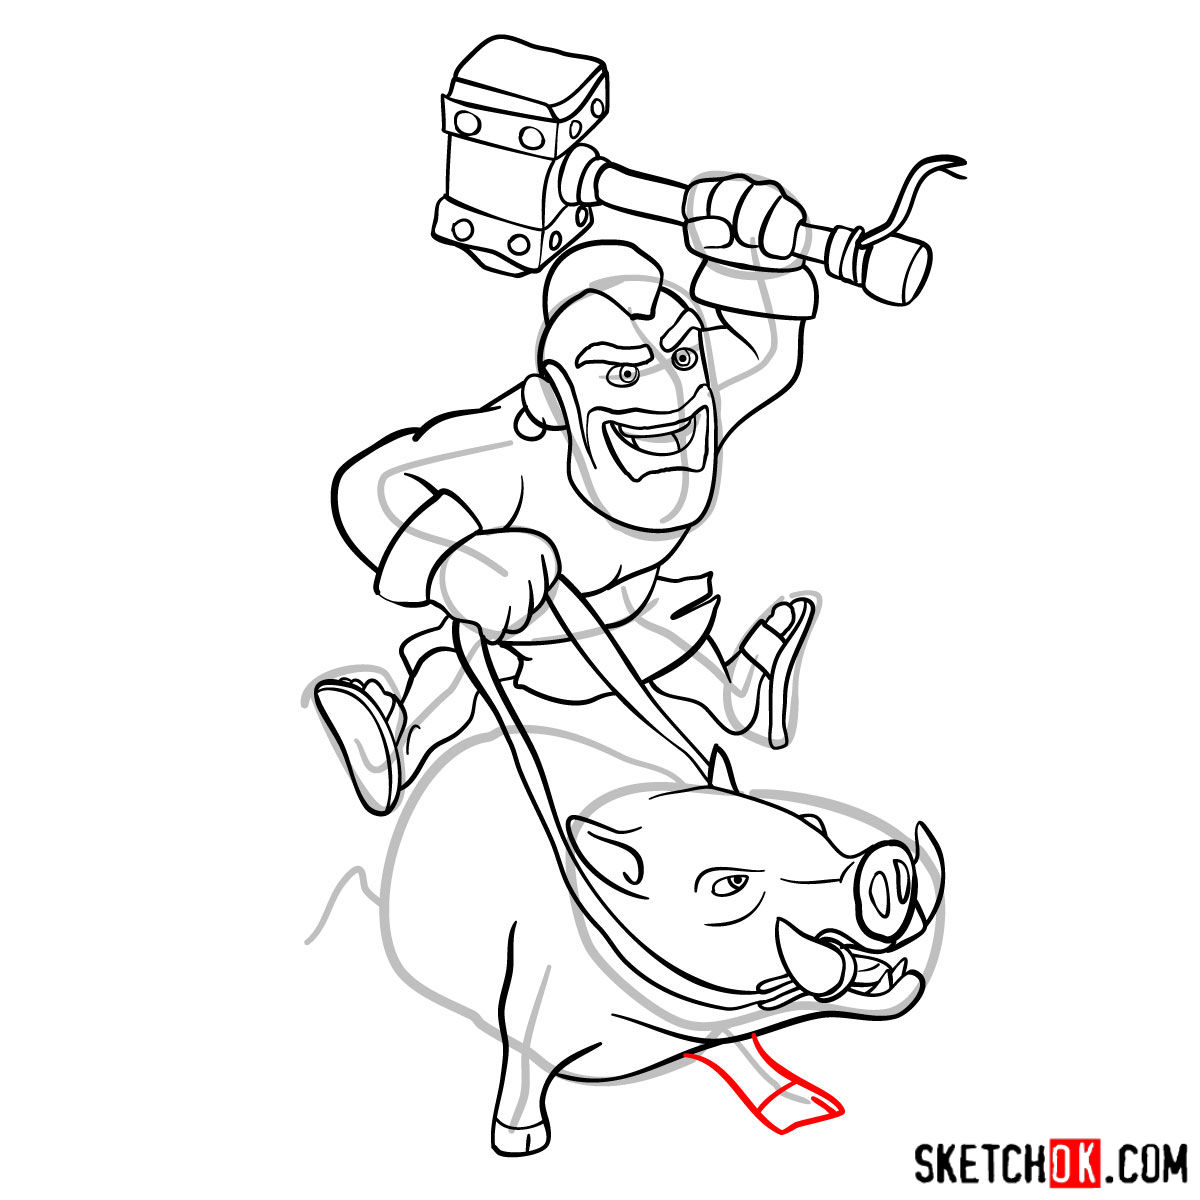 How to draw Hog Rider from Clash of Clans - step 13